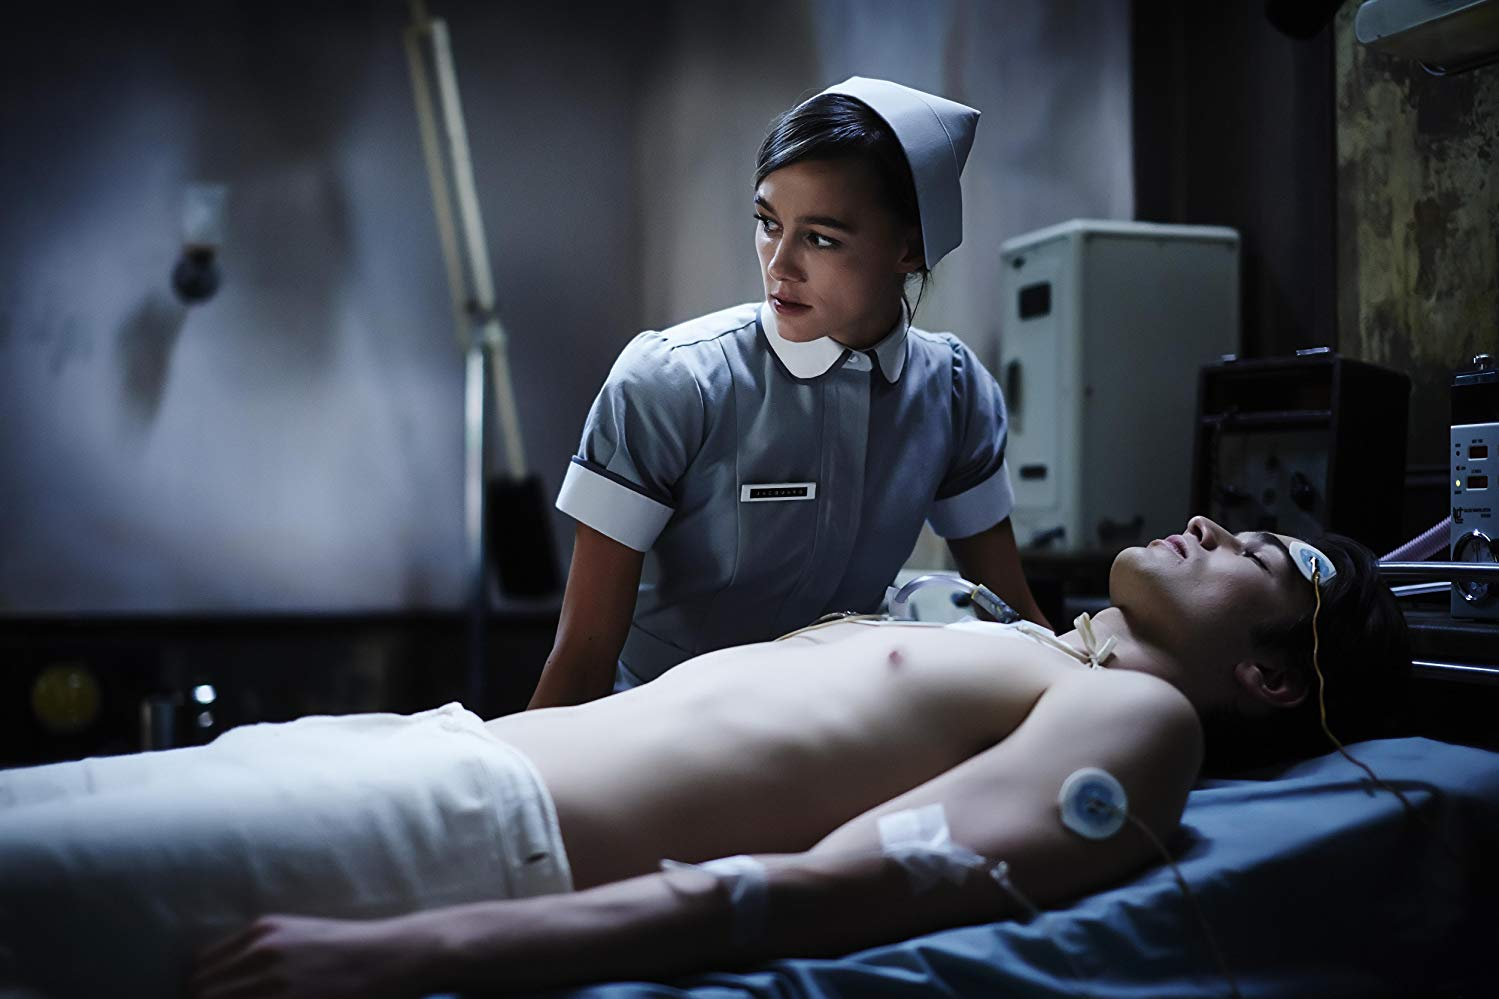 Nurse Sharni Vinson tends the comatose Patrick (Jackson Gallagher) in Patrick (2013)